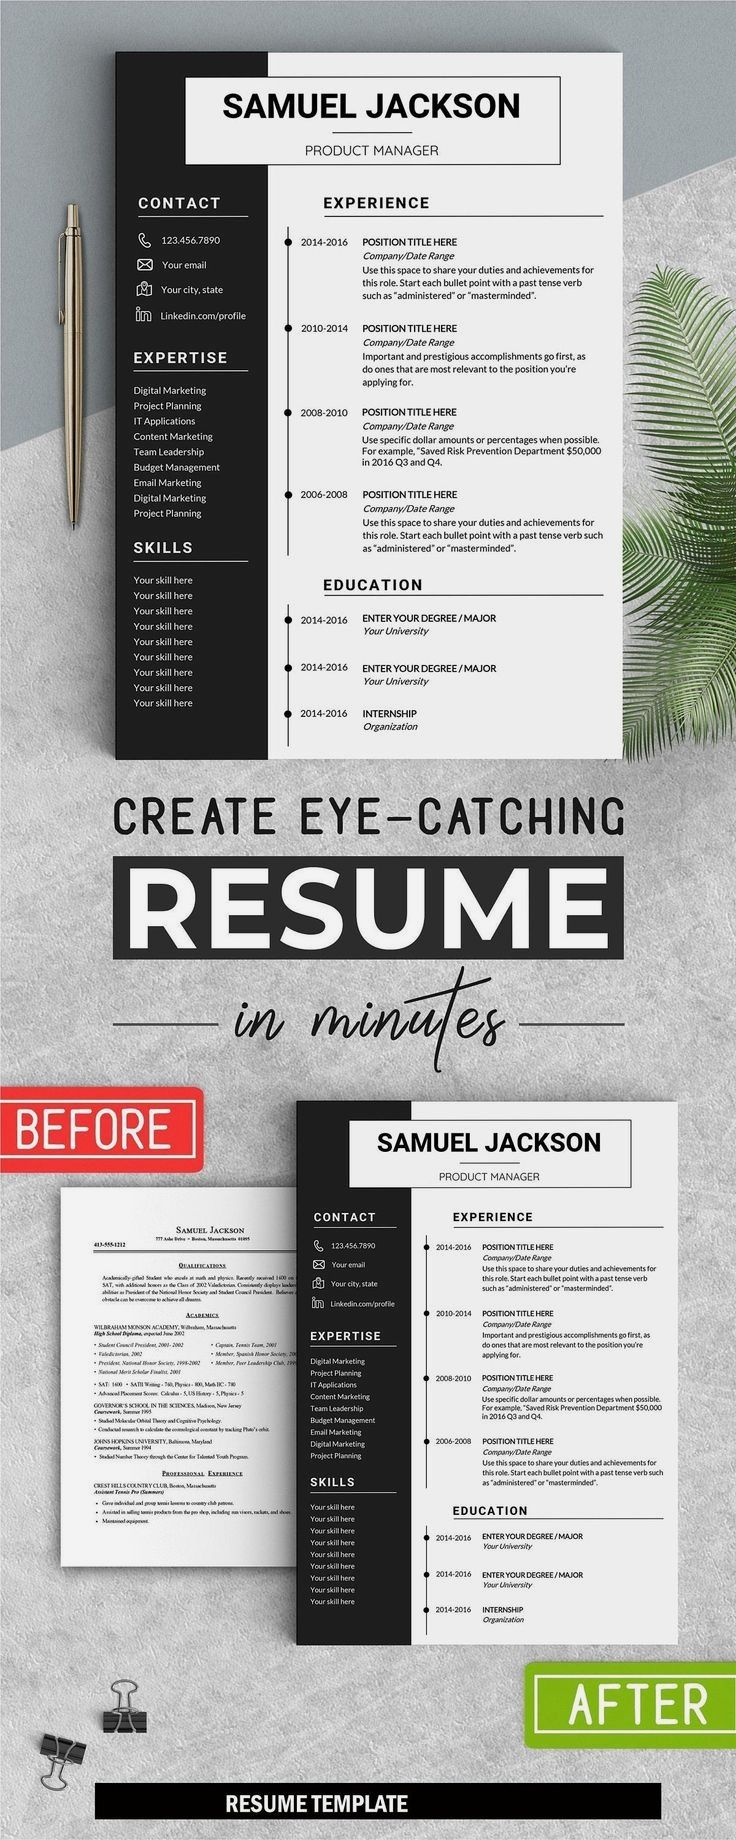 Resume Template With Headshot Photo Cover Letter 1 Page Word Resume Design Diy Cv Template Cover Letter For Resume Resume Design Creative Resume Template